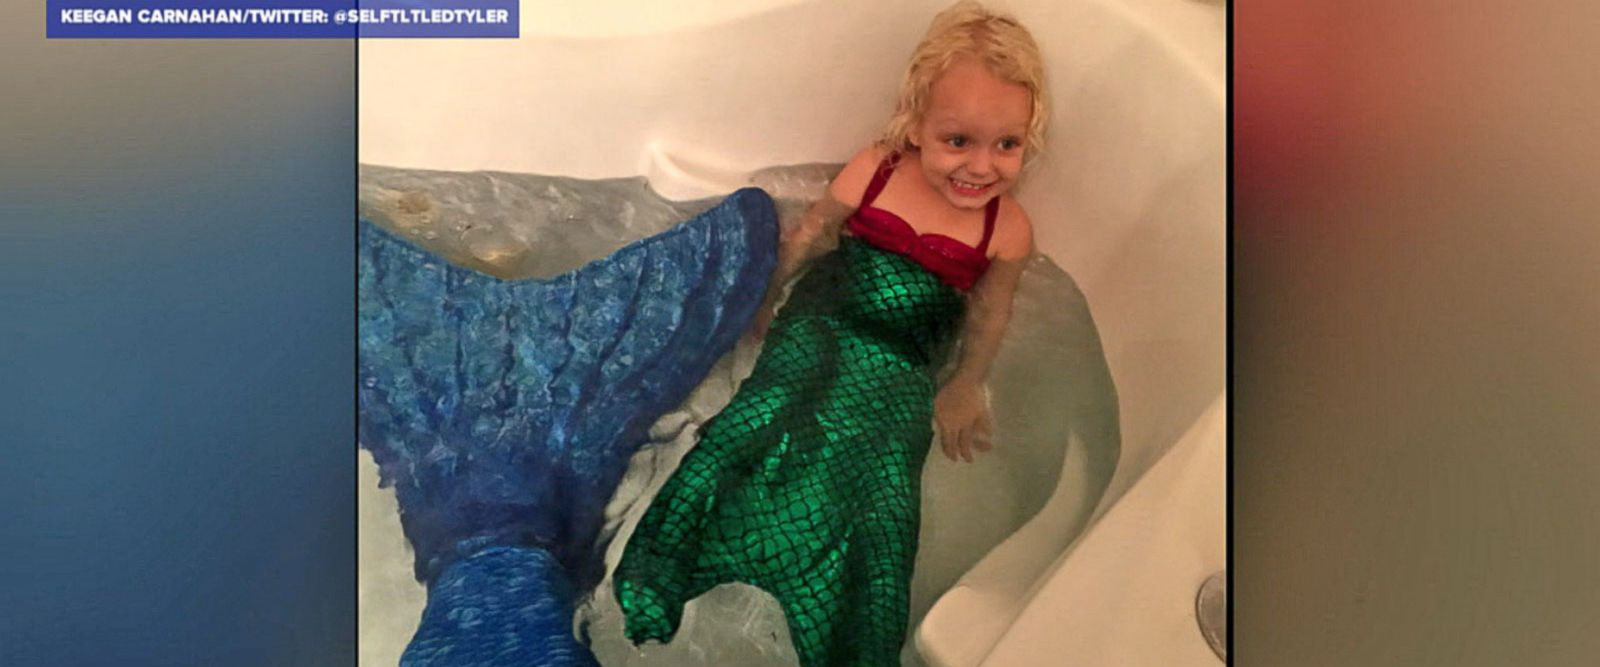 VIDEO: Teen brings little girl's mermaid dream to life